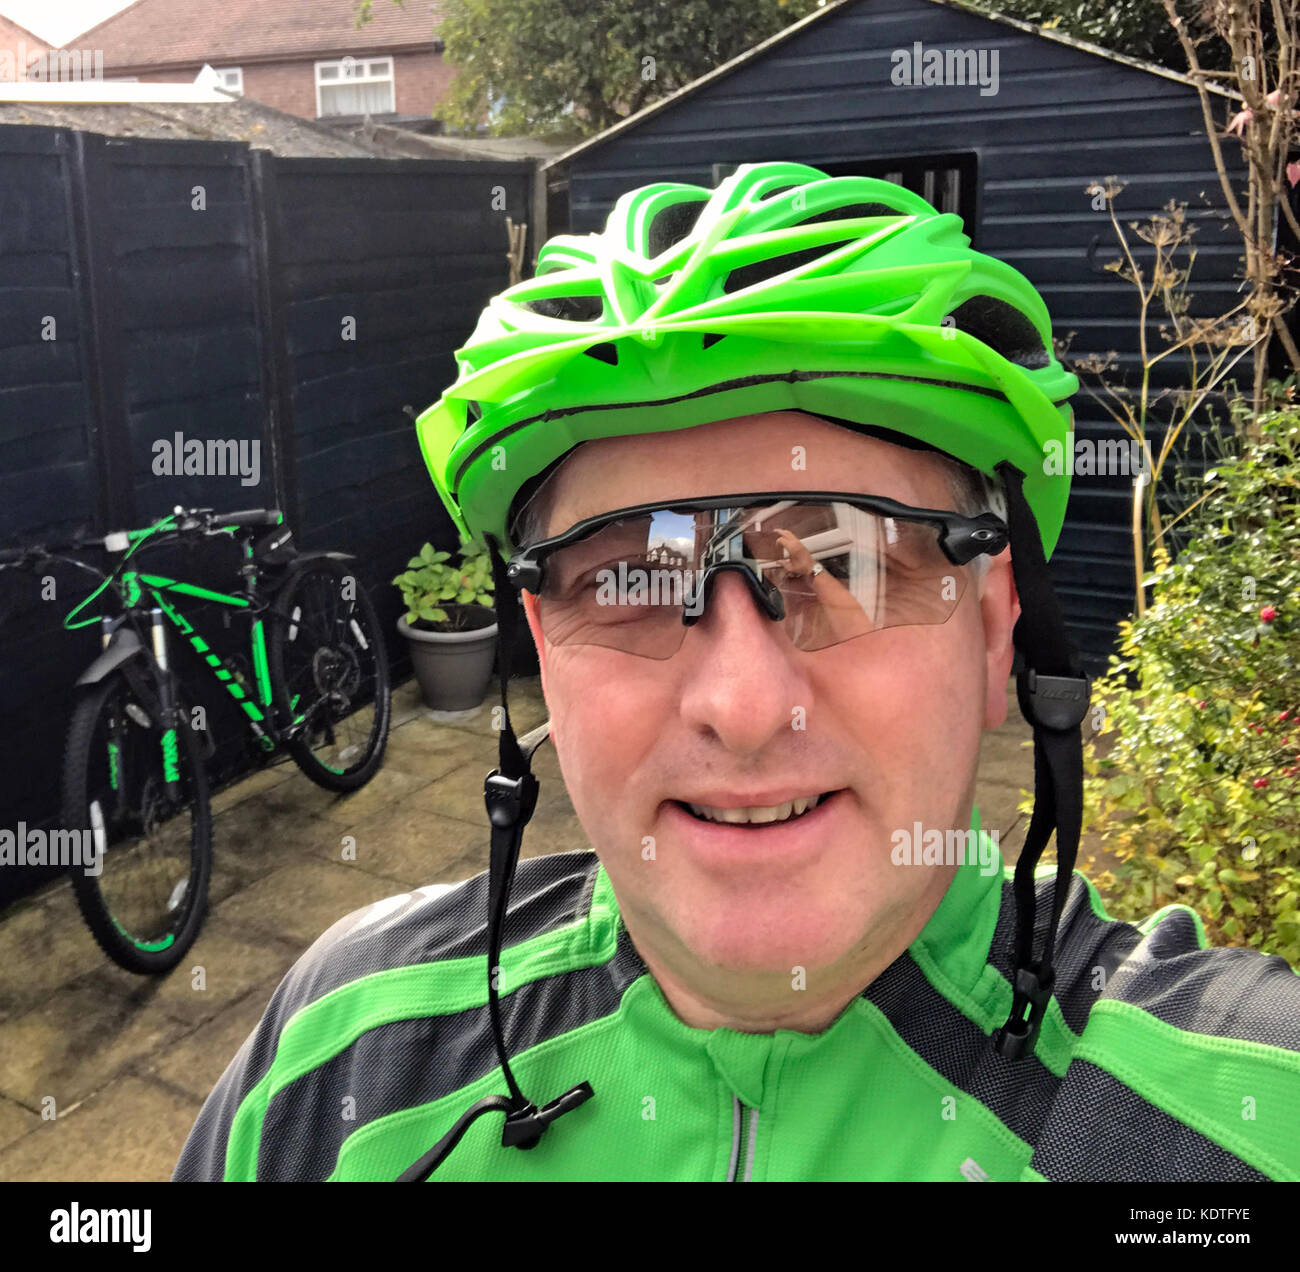 gotonysmith,Cyclist,in,green,with,Scott,29er,Bike,biker,green,950,scale,helmet,man,male,sunglasses,healthy,health,in garden,in,garden,smile,smiling,fit,fitness,black and green,black,lycra,29er,29,29inch,MTB,Mountain Bike,rider,ride,selfie,portrait